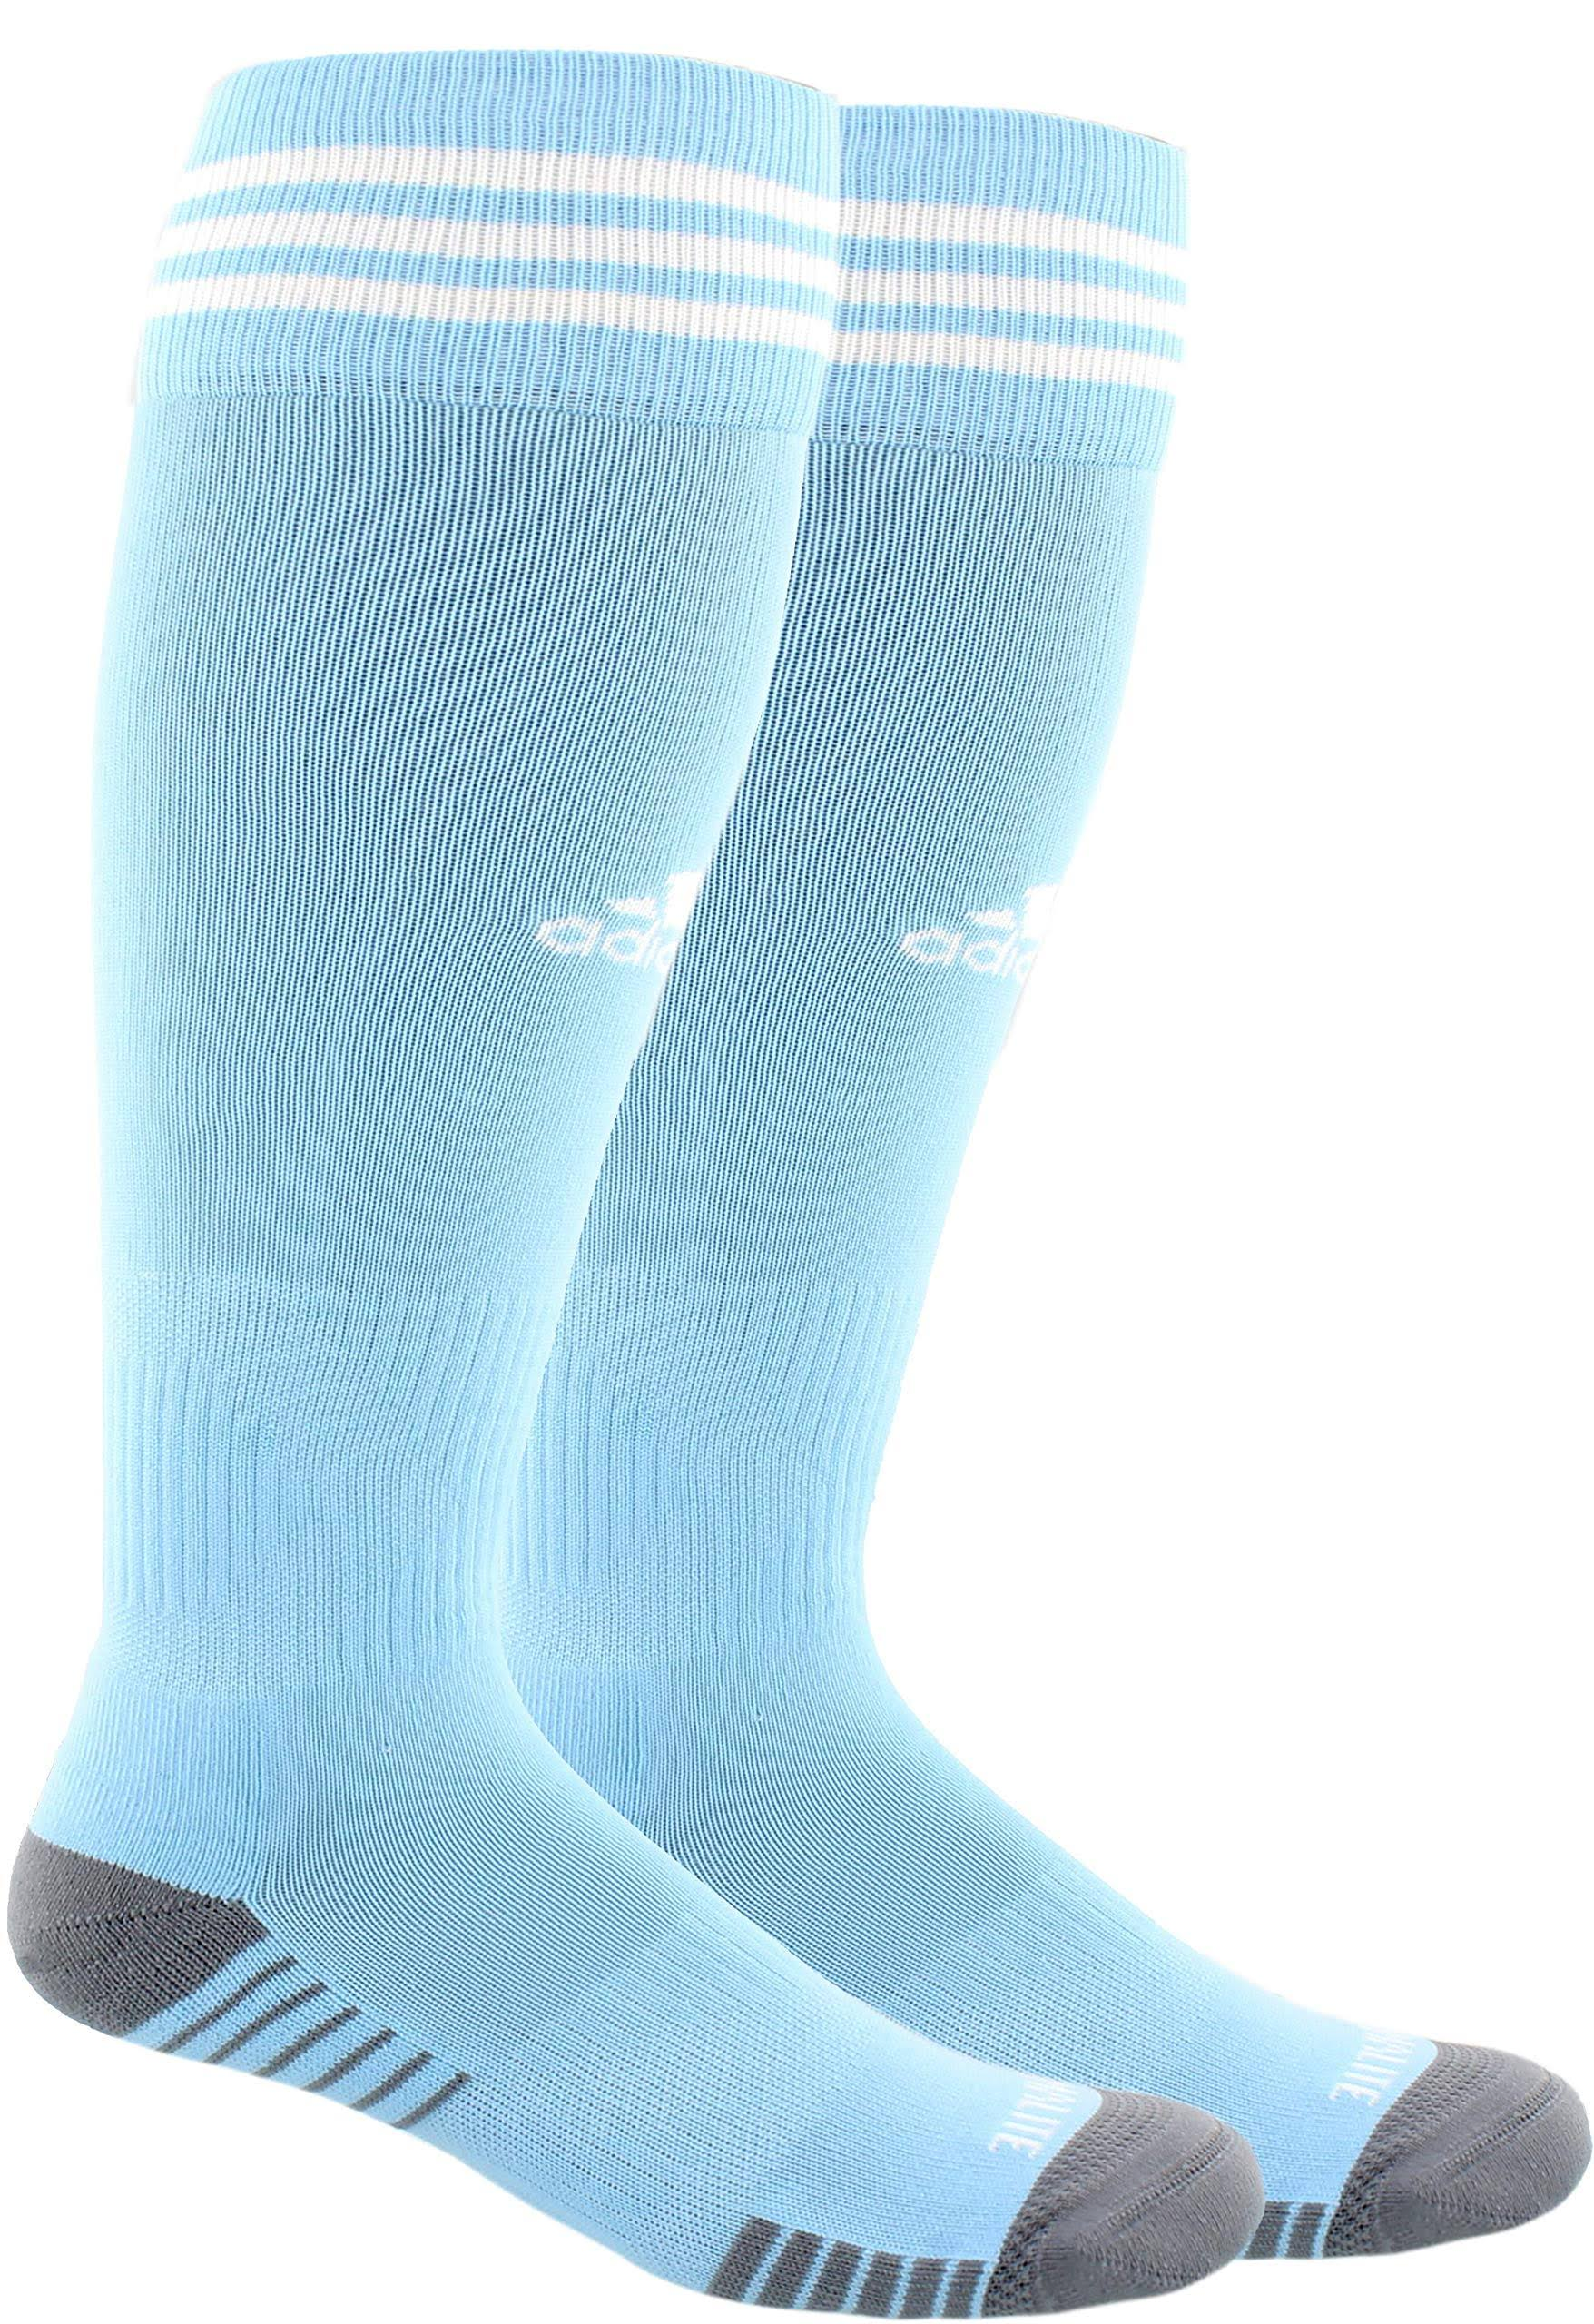 Adidas Copa Zone Cushion IV Socks - Sky Blue/White - L